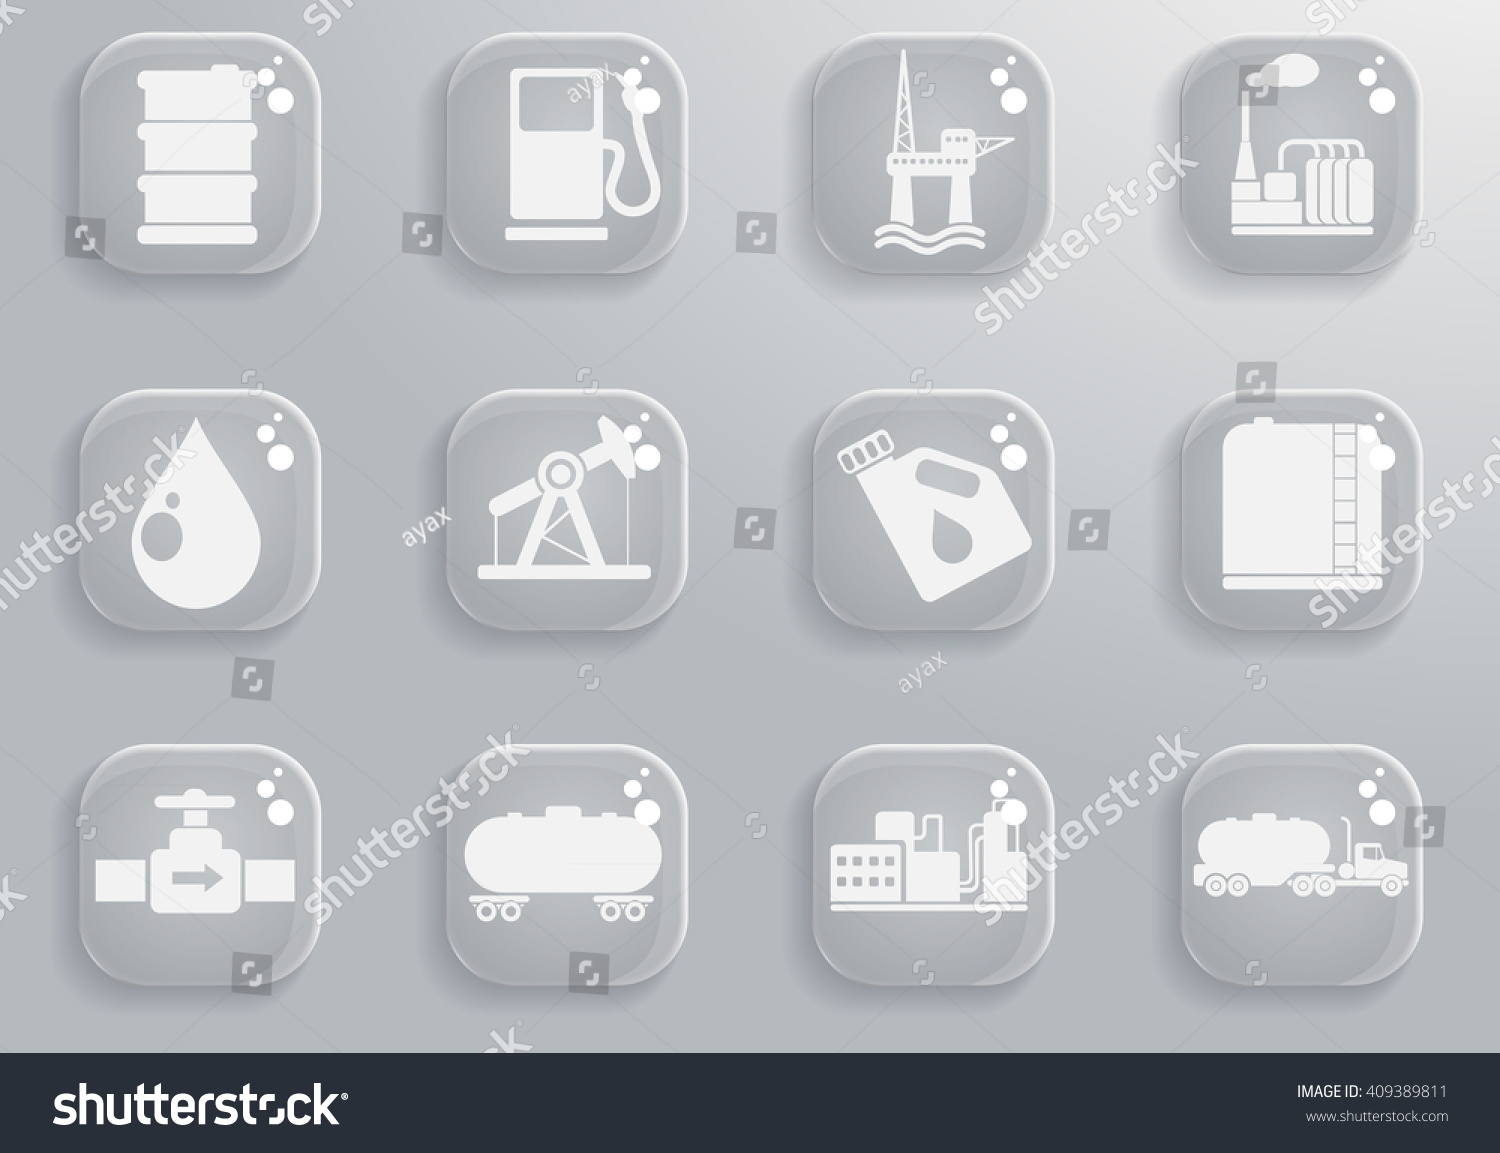 Oil petrol industry objects simply symbols stock vector 409389811 oil and petrol industry objects simply symbols for web and user interface buycottarizona